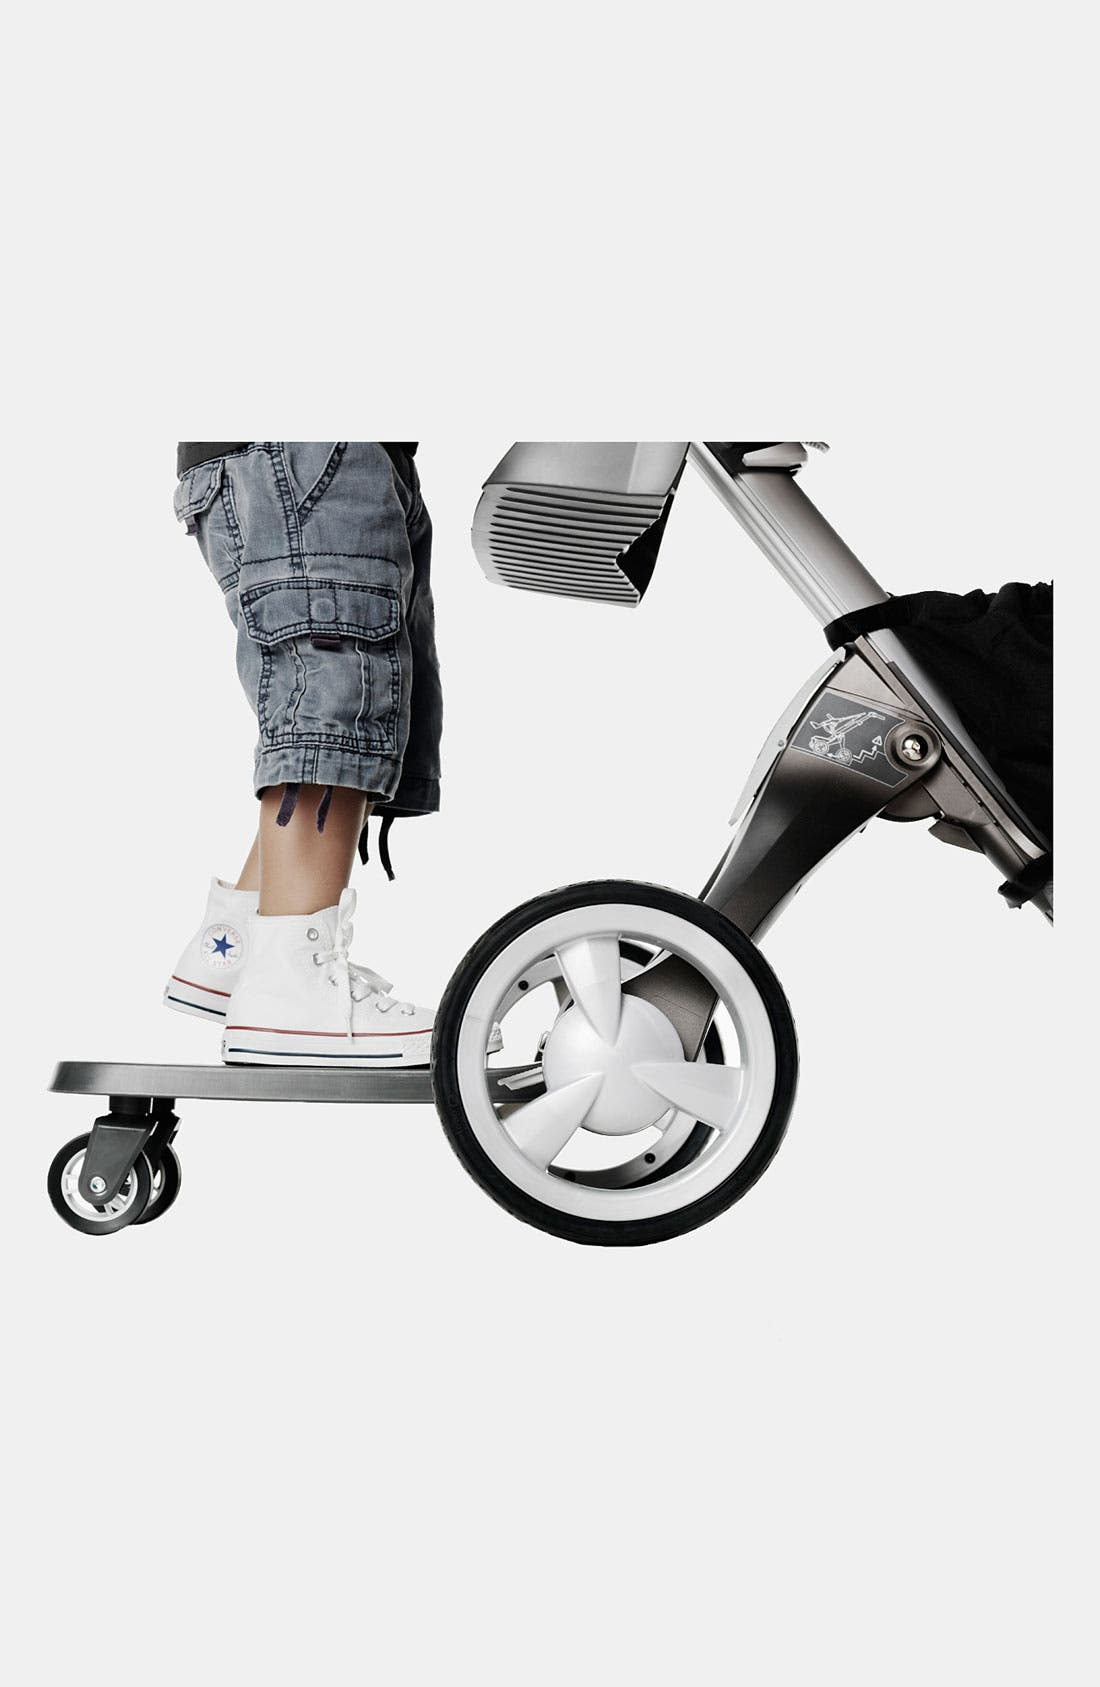 Alternate Image 1 Selected - Stokke 'Xplory®' Stroller Rider